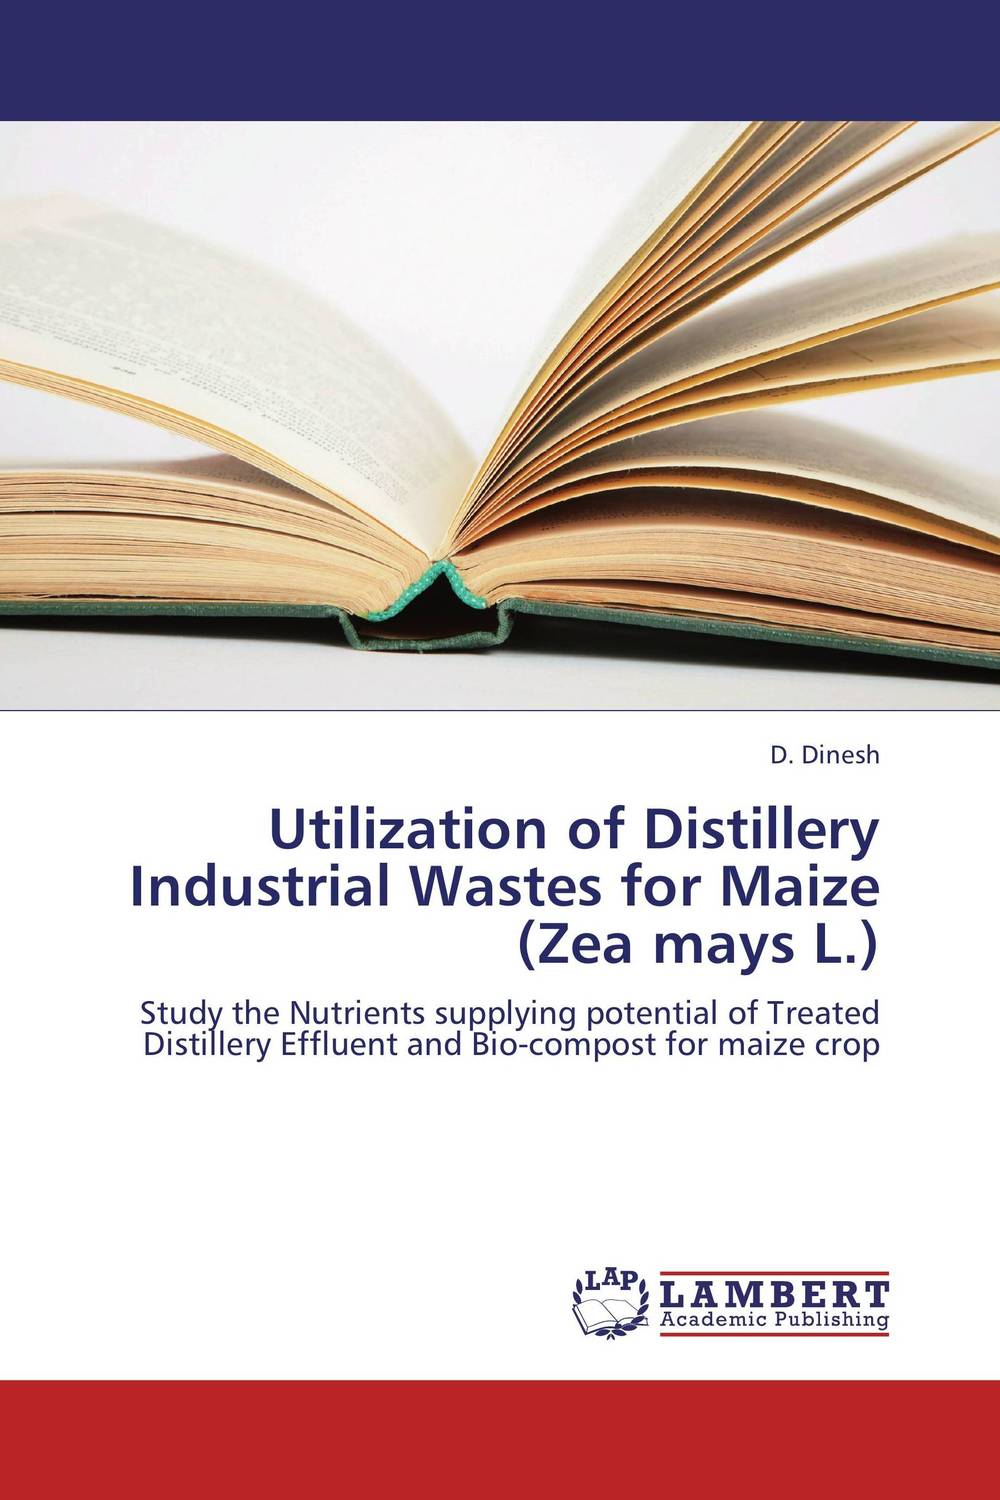 Utilization of Distillery Industrial Wastes for Maize (Zea mays L.)